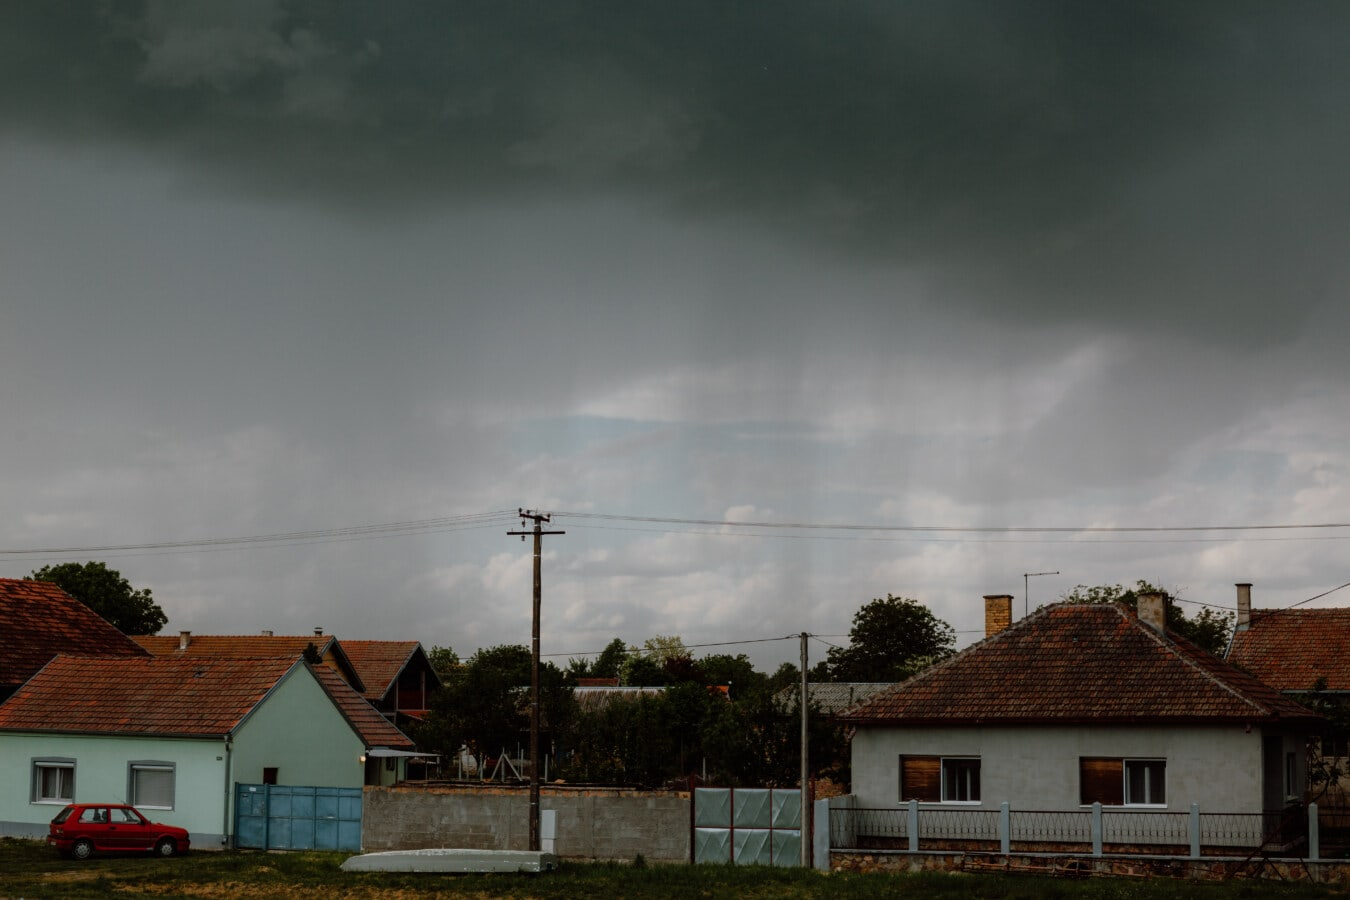 bad weather, cloudy, street, urban area, houses, home, storm, structure, house, building